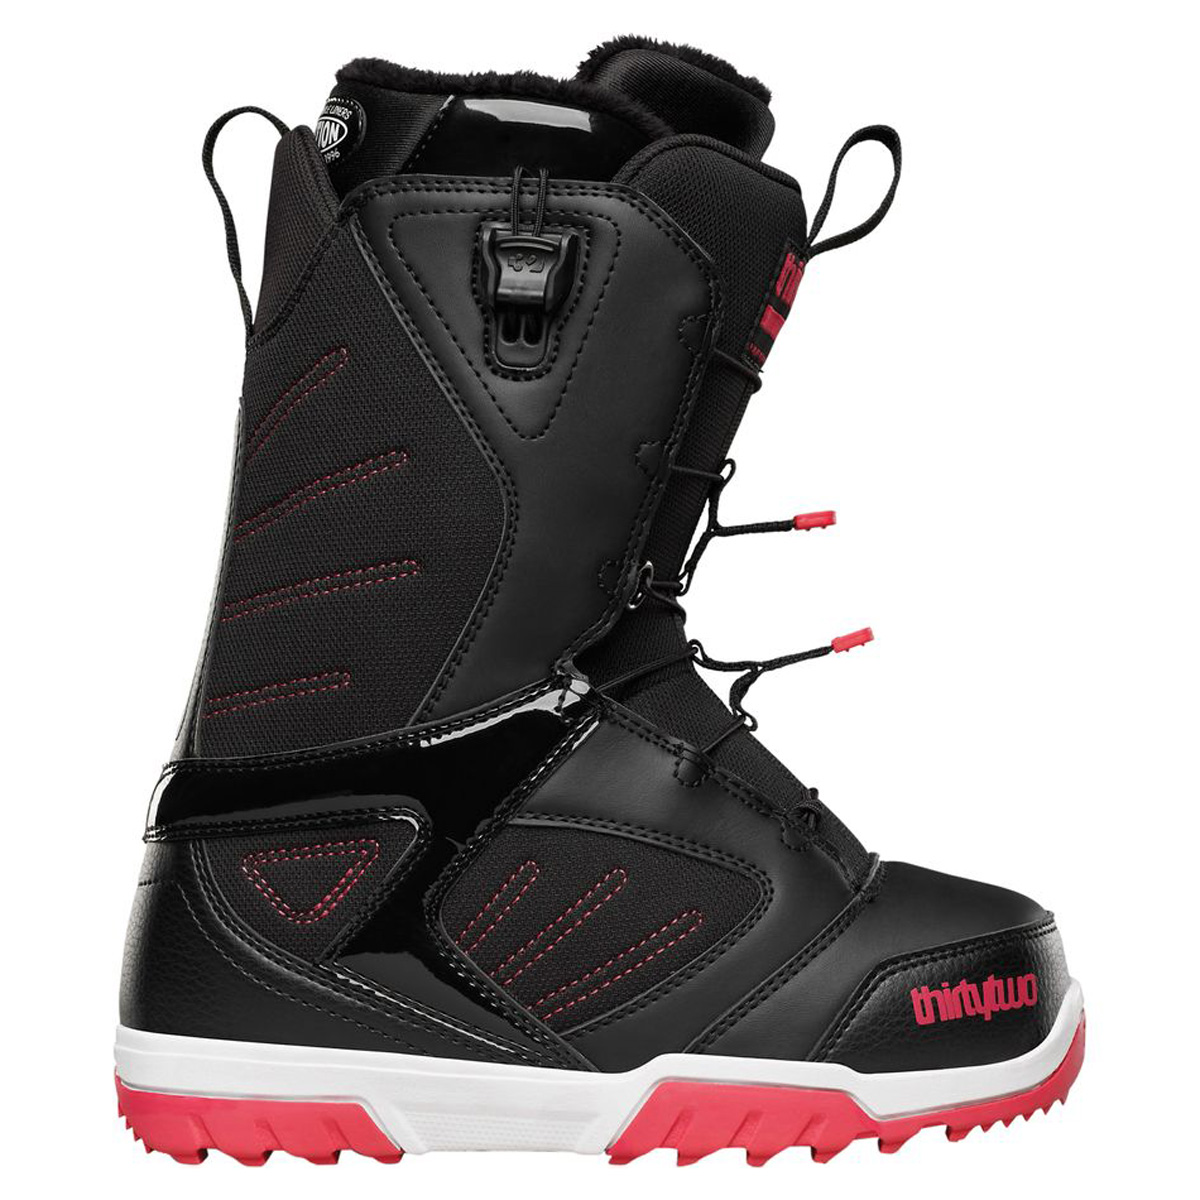 ThirtyTwo Womens Groomer FT Snowboard Boots 2016 UK 4 review